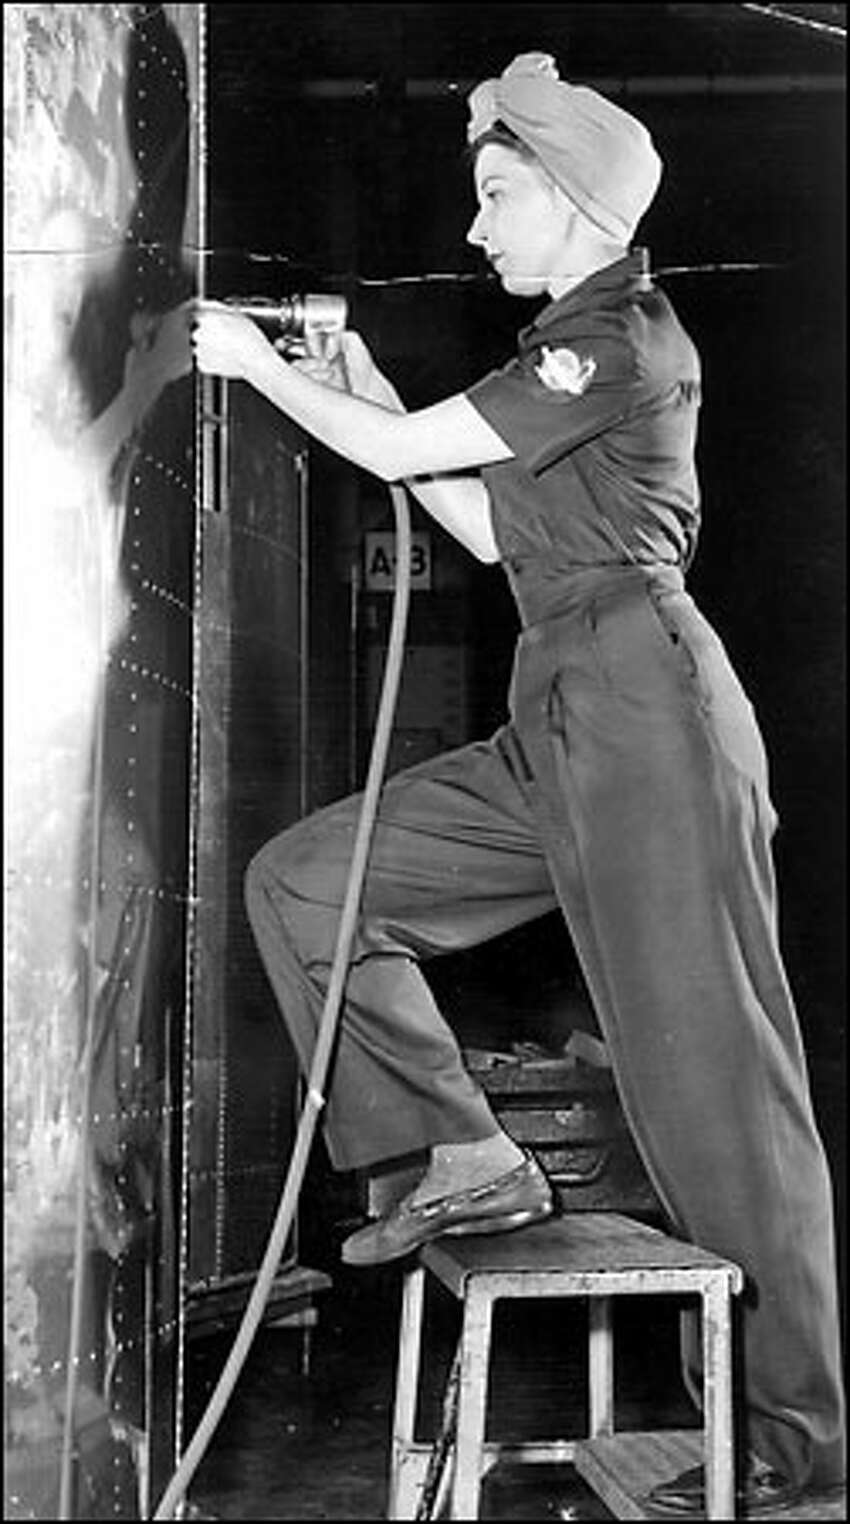 Rosie the Riveter, 1943: Elaine Tosch does her riveting clad in a fashionable Flying Fortress uniform by Miss King. Thousands of women joined the Boeing production line during World War II as airplane output shifted into high gear.